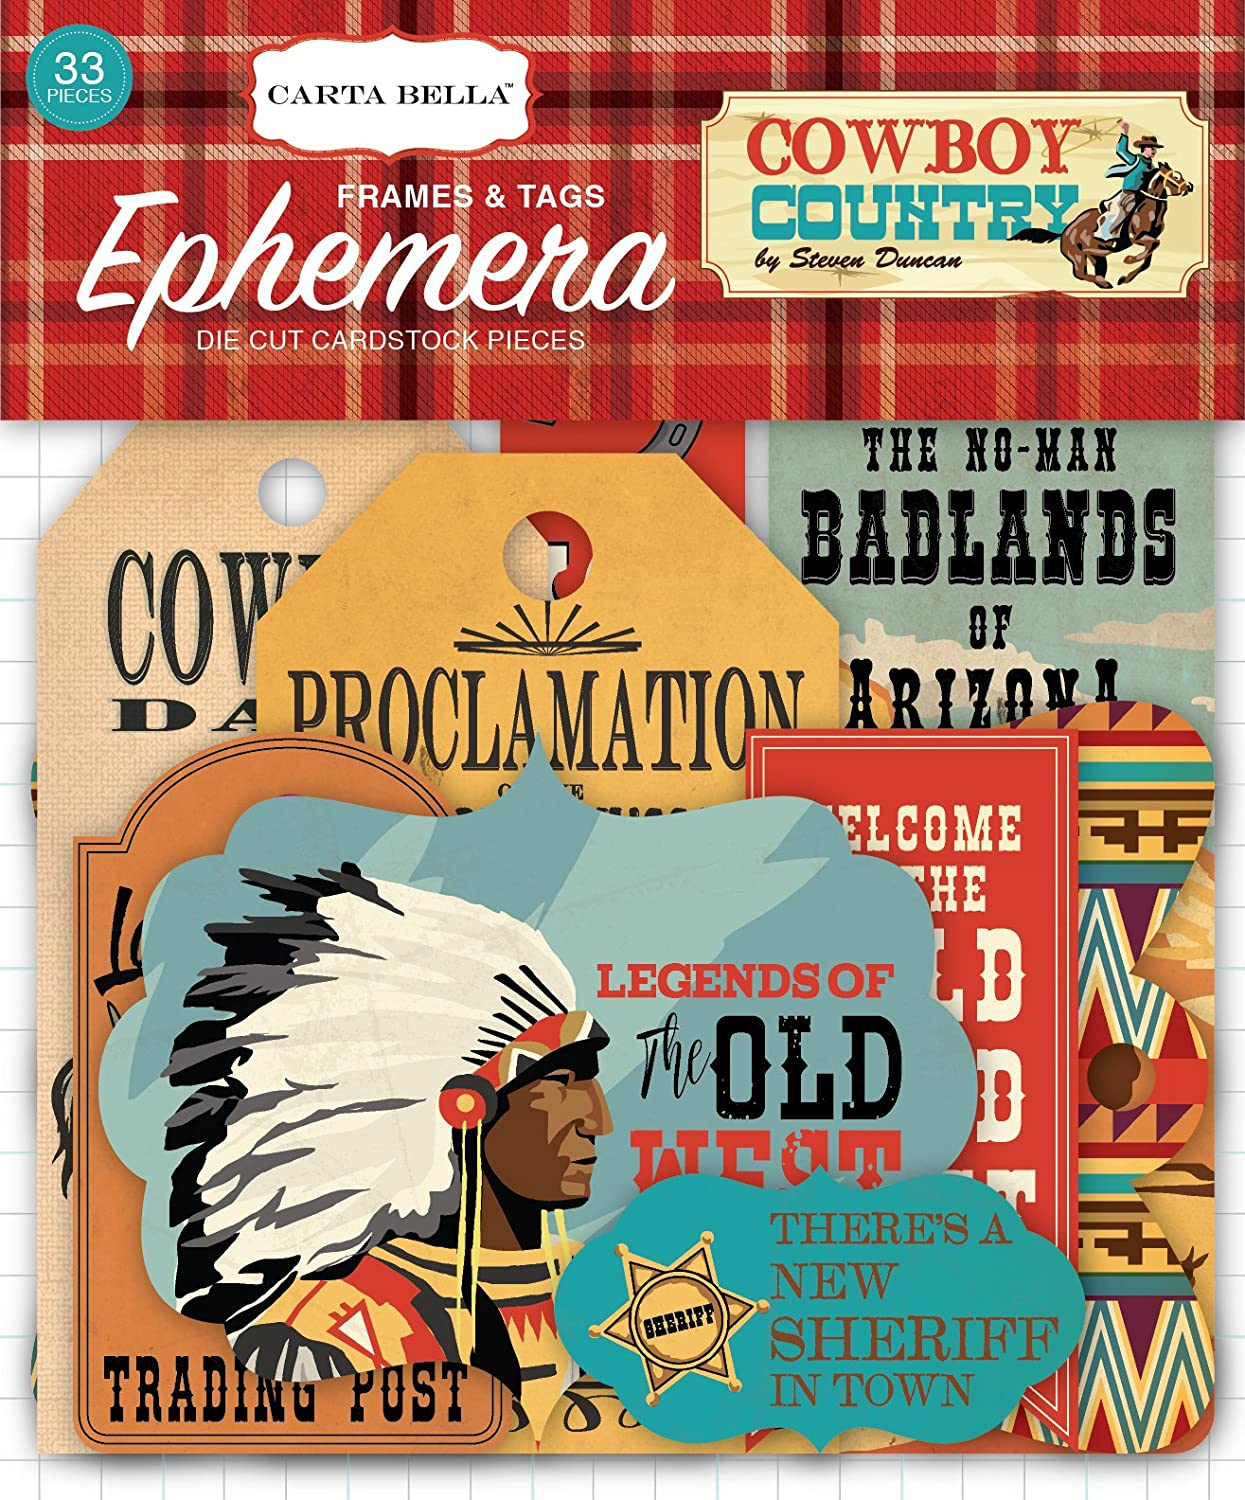 Echo Park Stickers Steven Duncan Cowboy Country 12x12 Collection Kit Papers